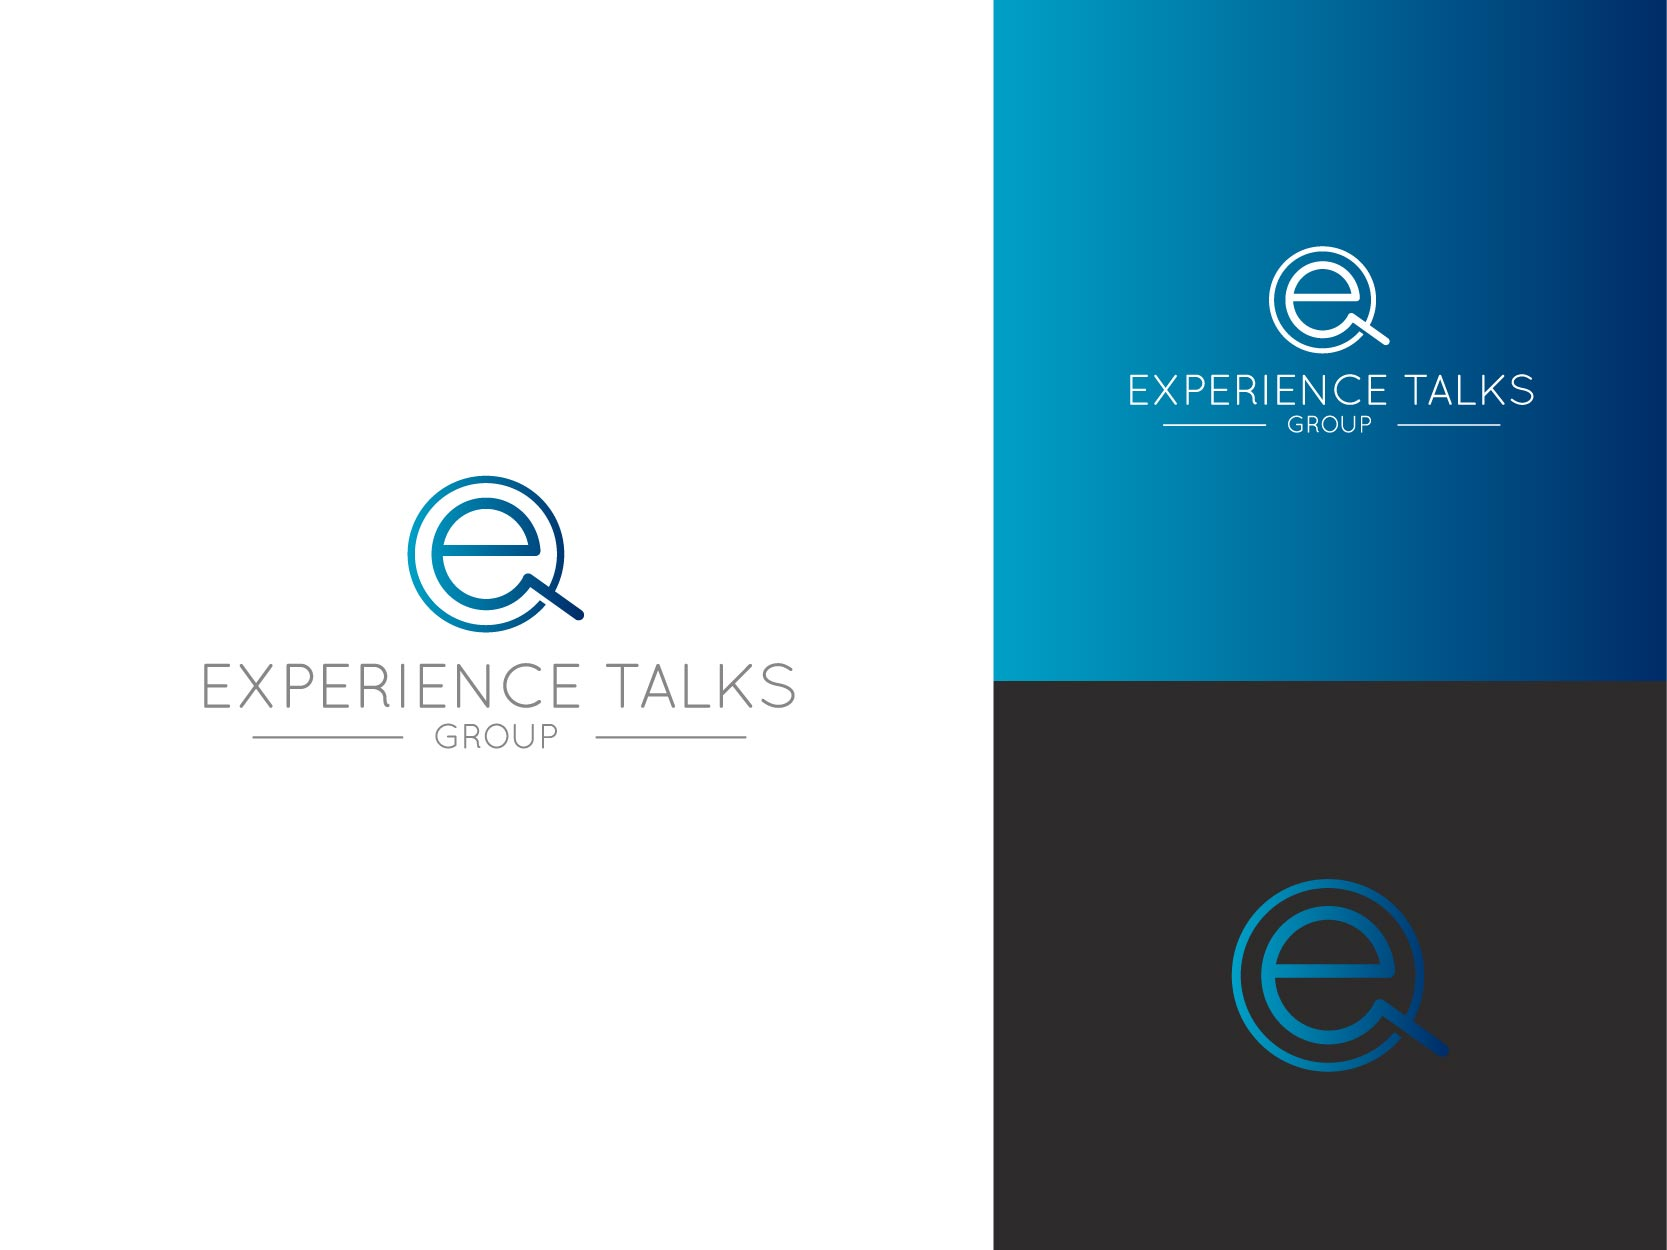 Logo Design by Osi Indra - Entry No. 8 in the Logo Design Contest Captivating Logo Design for Experience Talks Group.